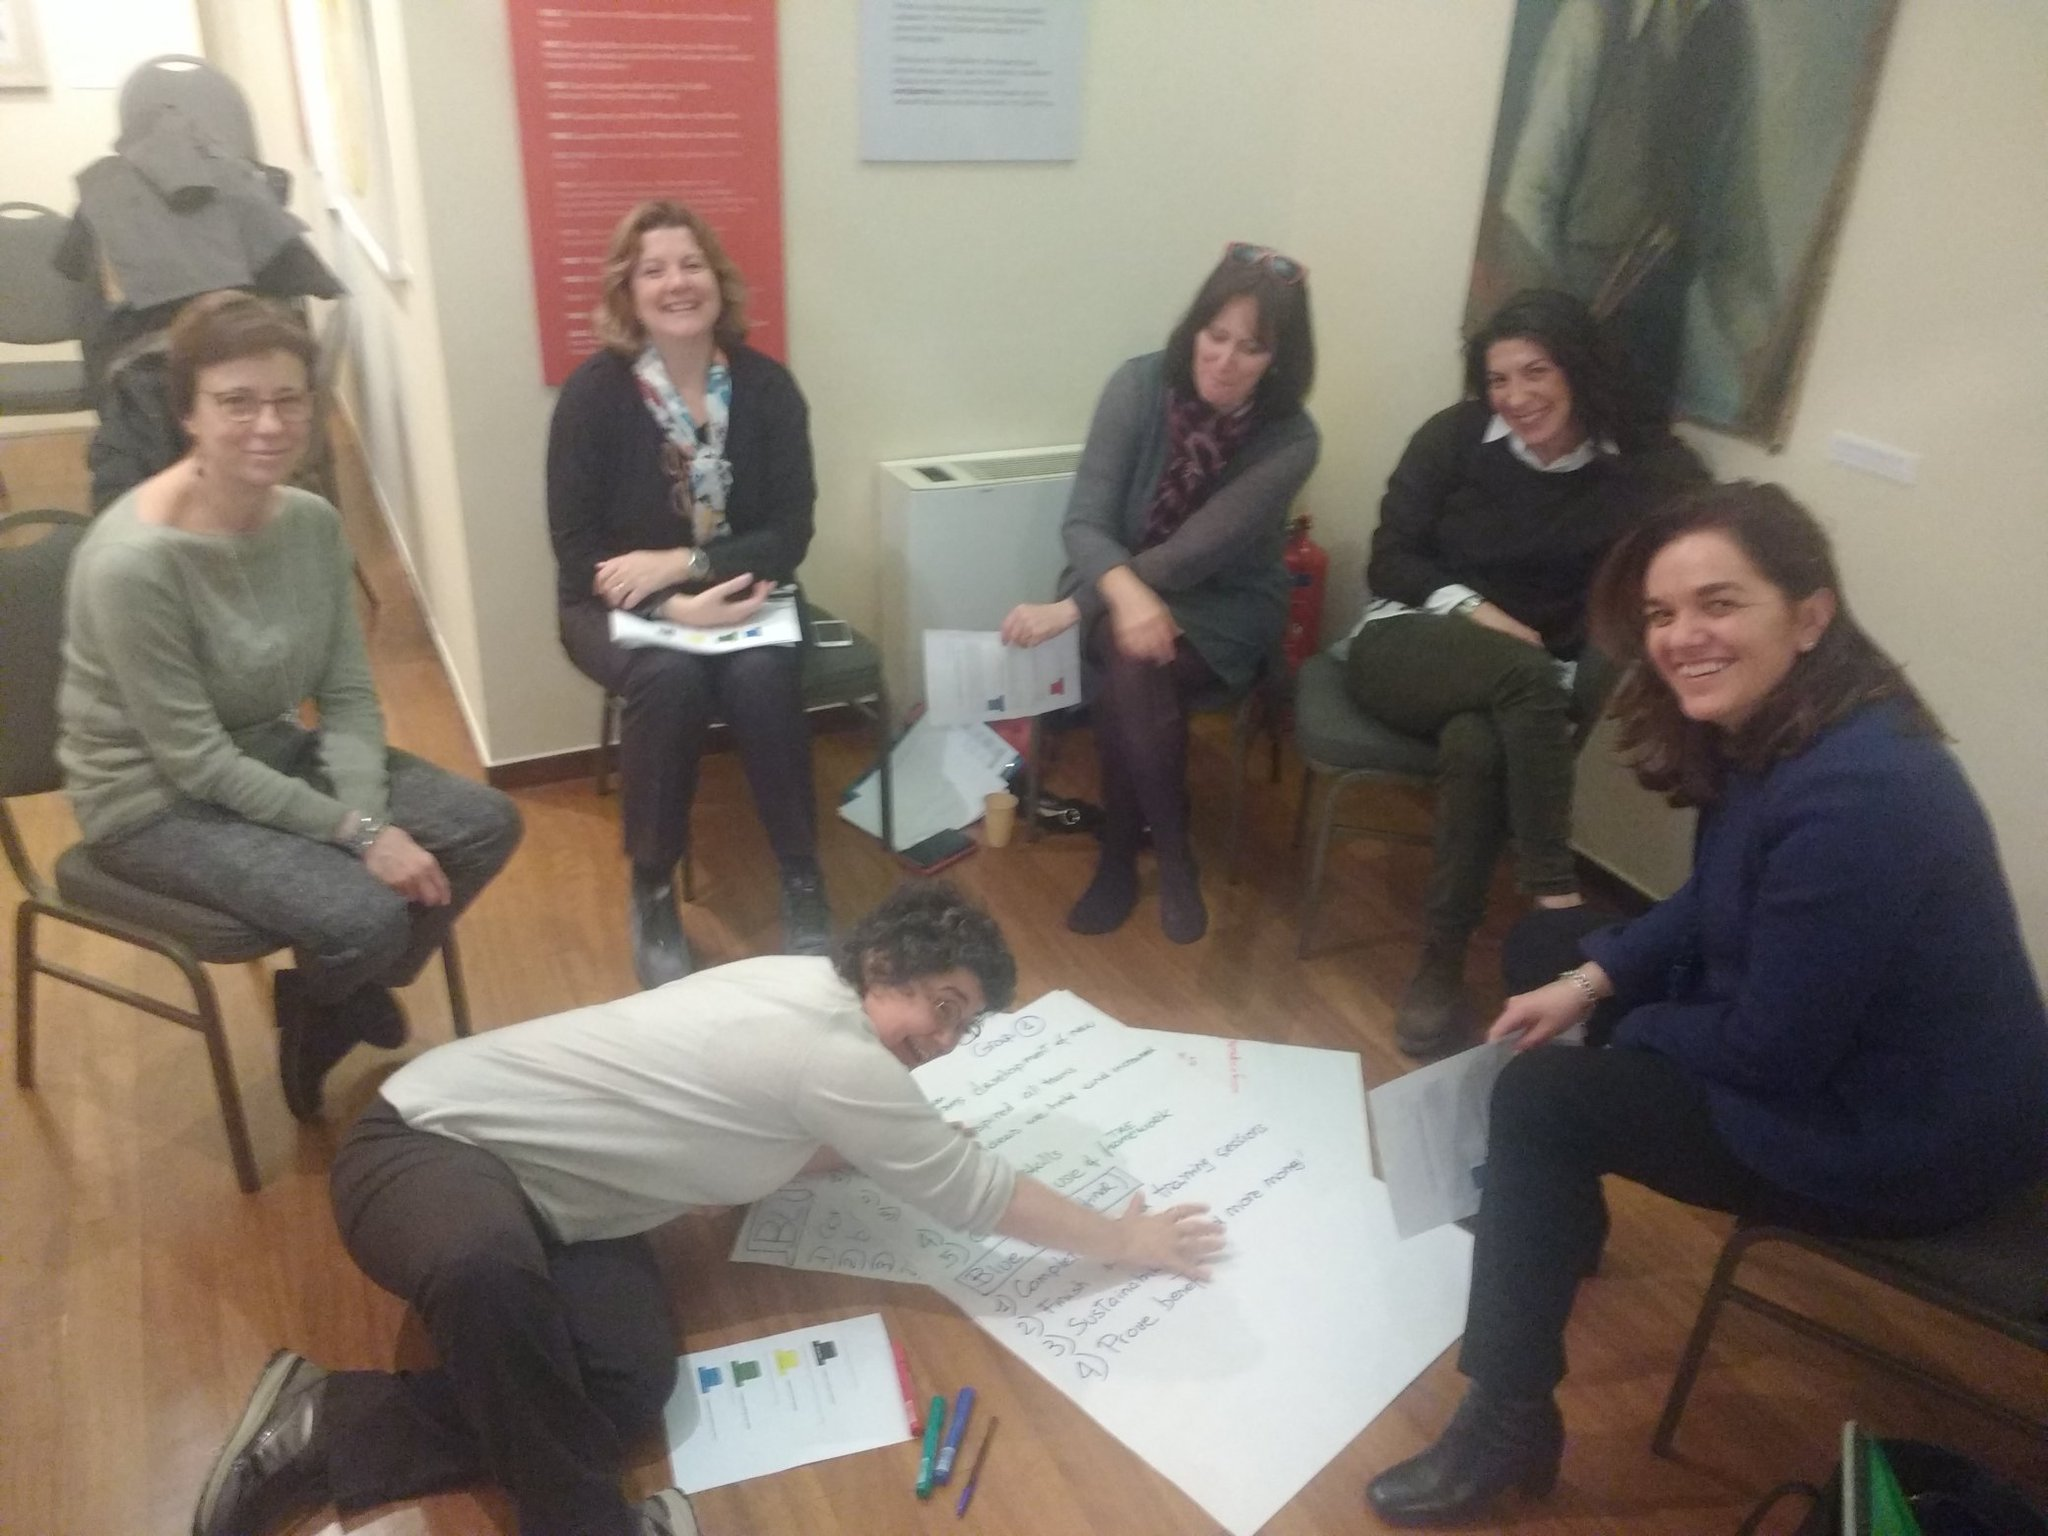 """""""Thinking about the TAE"""": exchanging ideas and working collaboratively @UoBAutism #TAEAthens #TAE @LaskaridisFound https://t.co/Pz4SHASzta"""